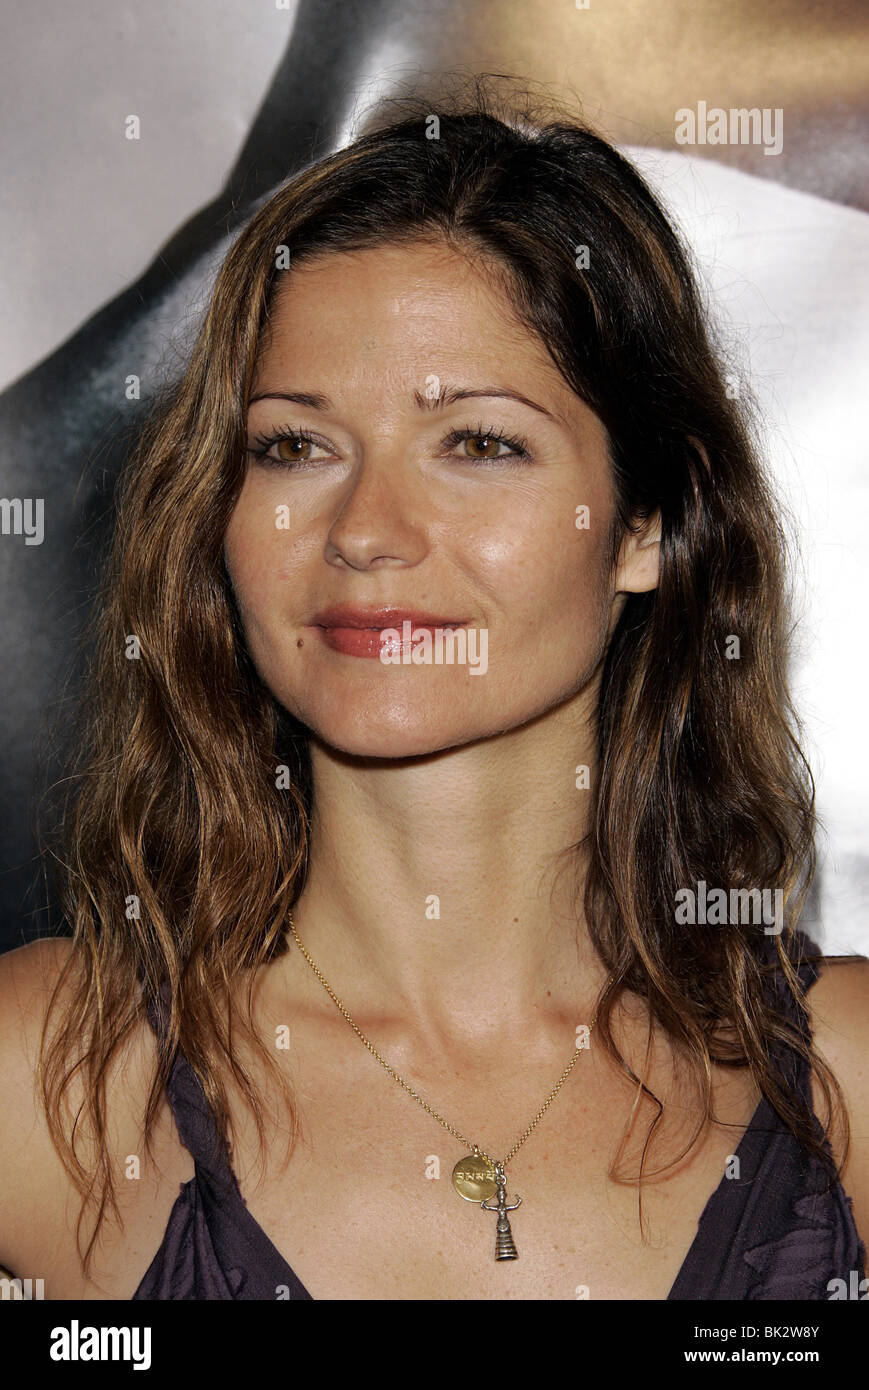 Sexy 2019 Jill Hennessy naked photo 2017